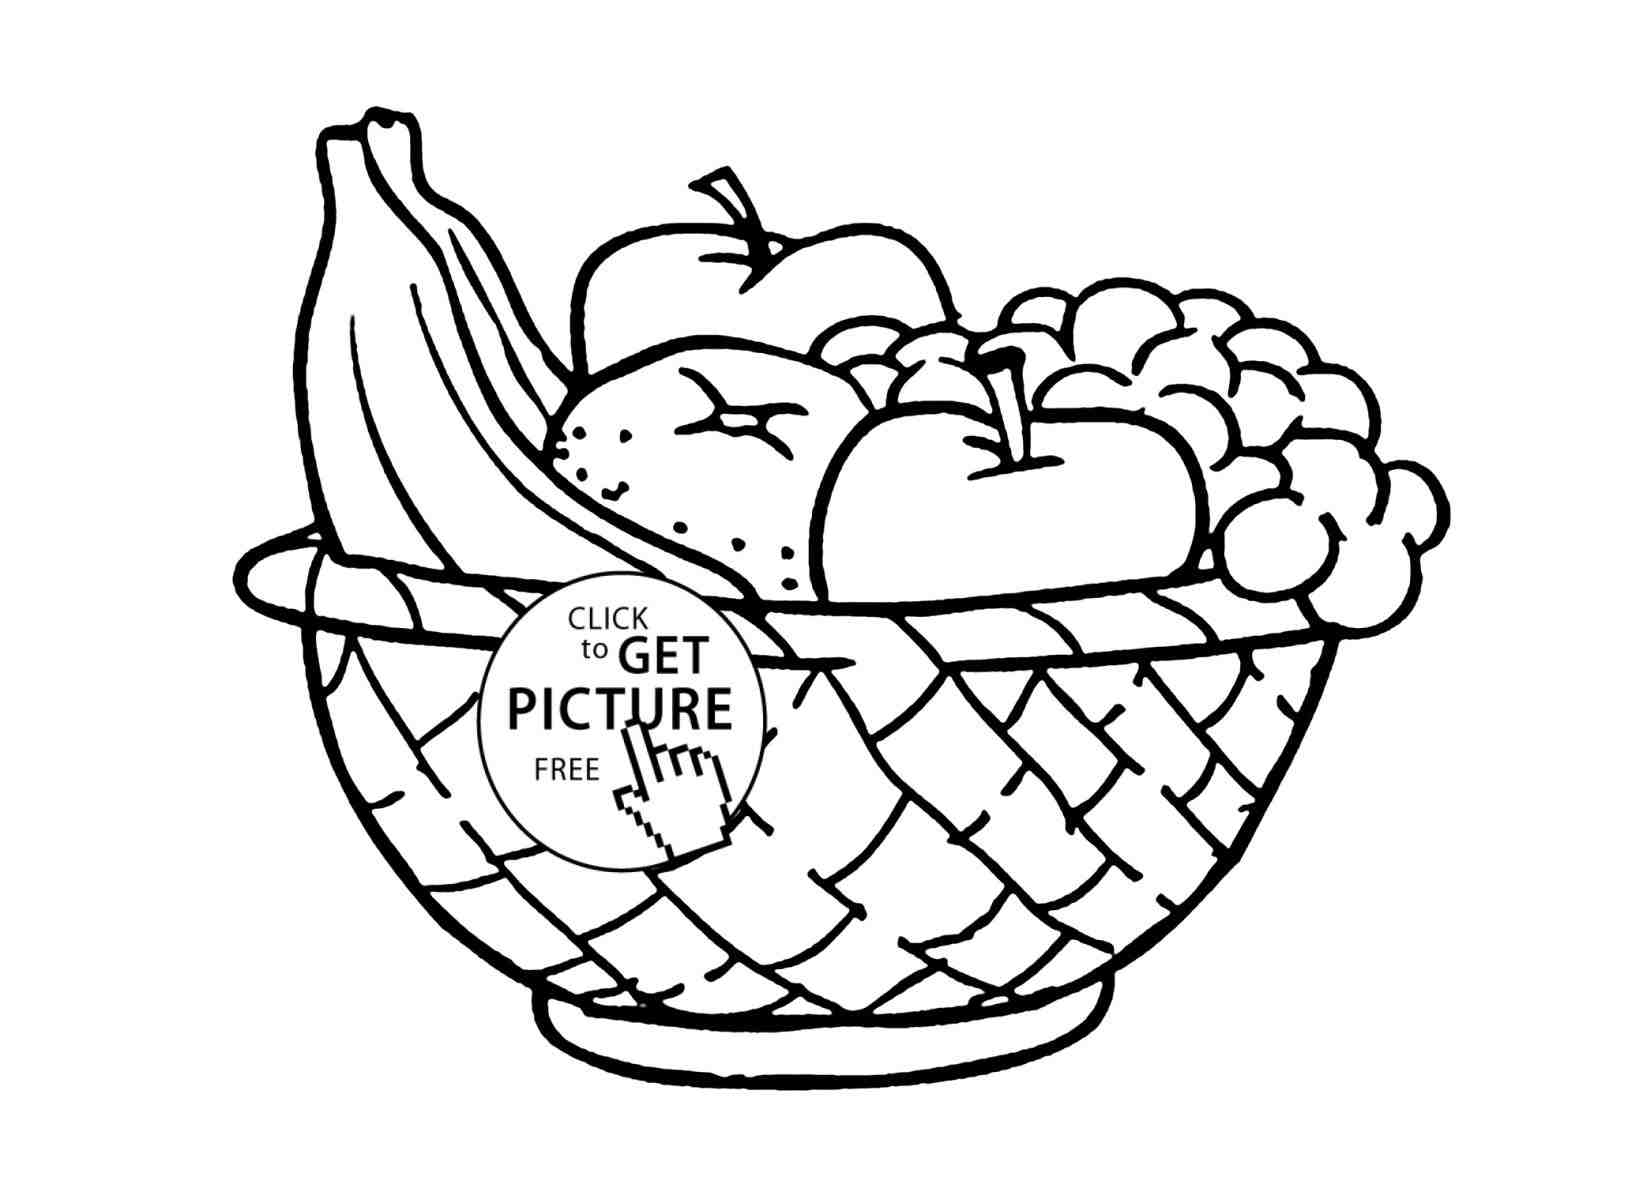 Custard Apple Drawing at GetDrawings.com   Free for personal use ... for Custard Apple Clipart Black And White  585ifm